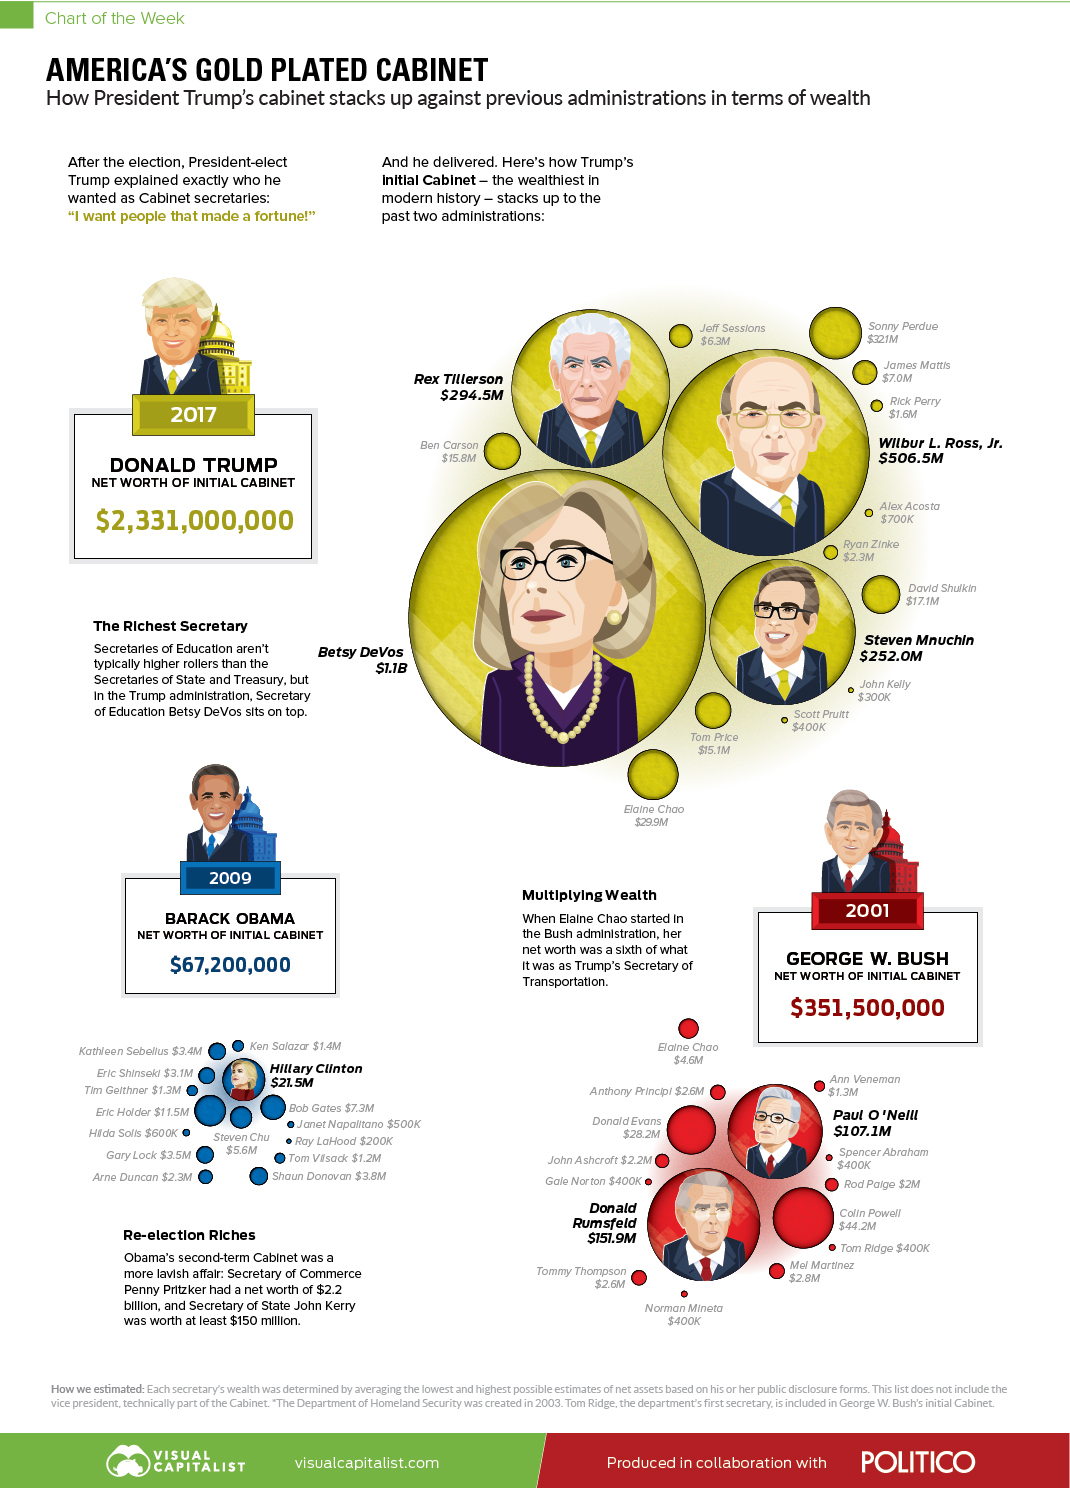 Chart: America's Gold Plated Cabinet